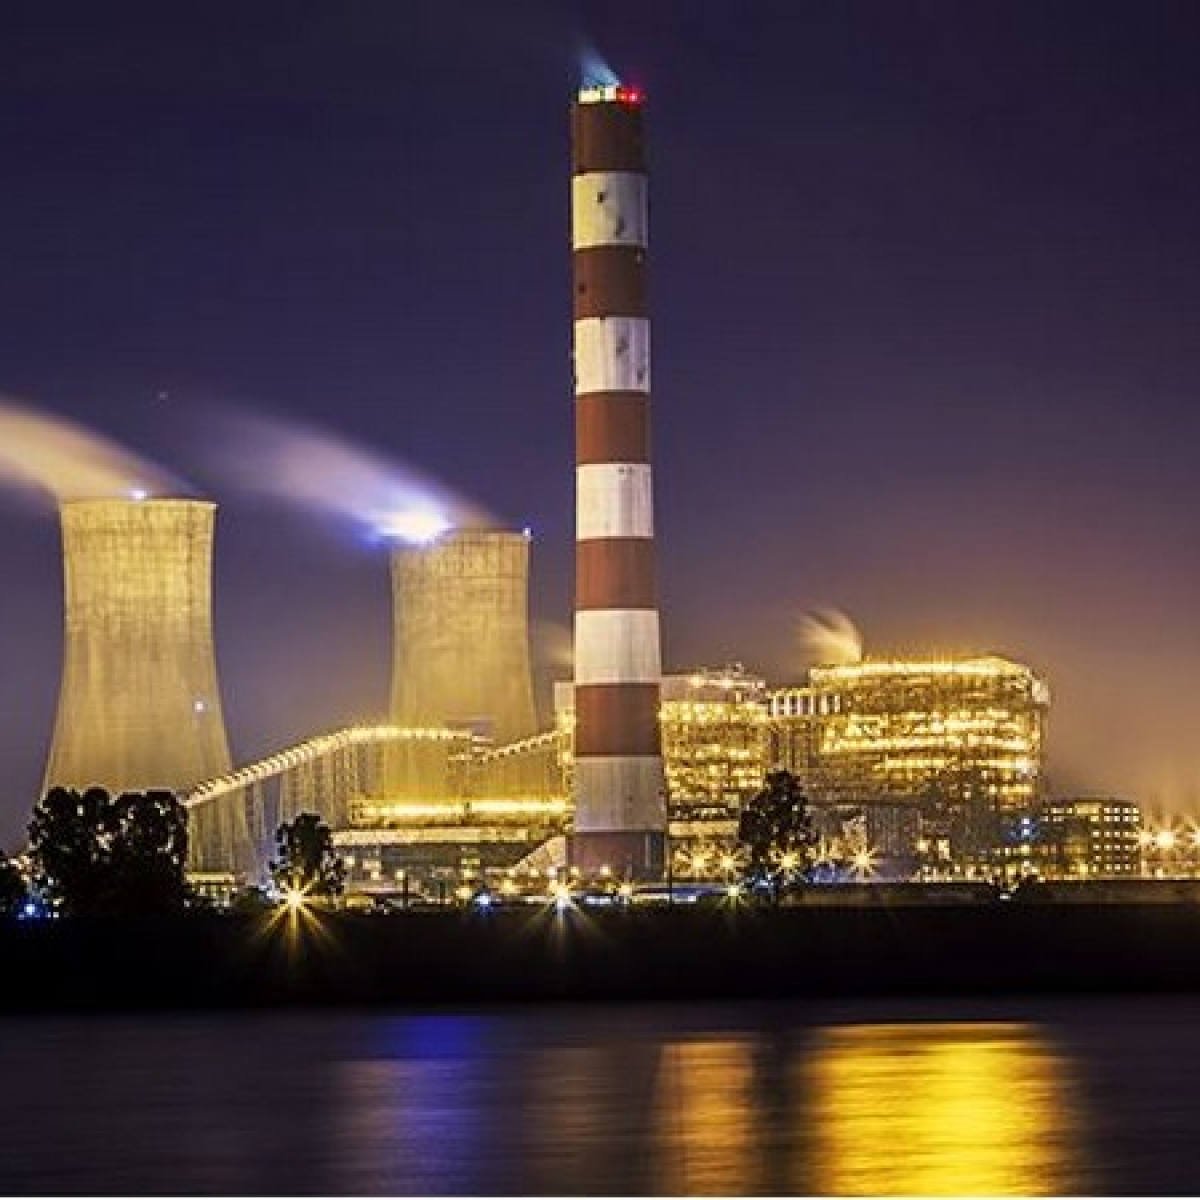 L&T's power business wins significant order from NTPC